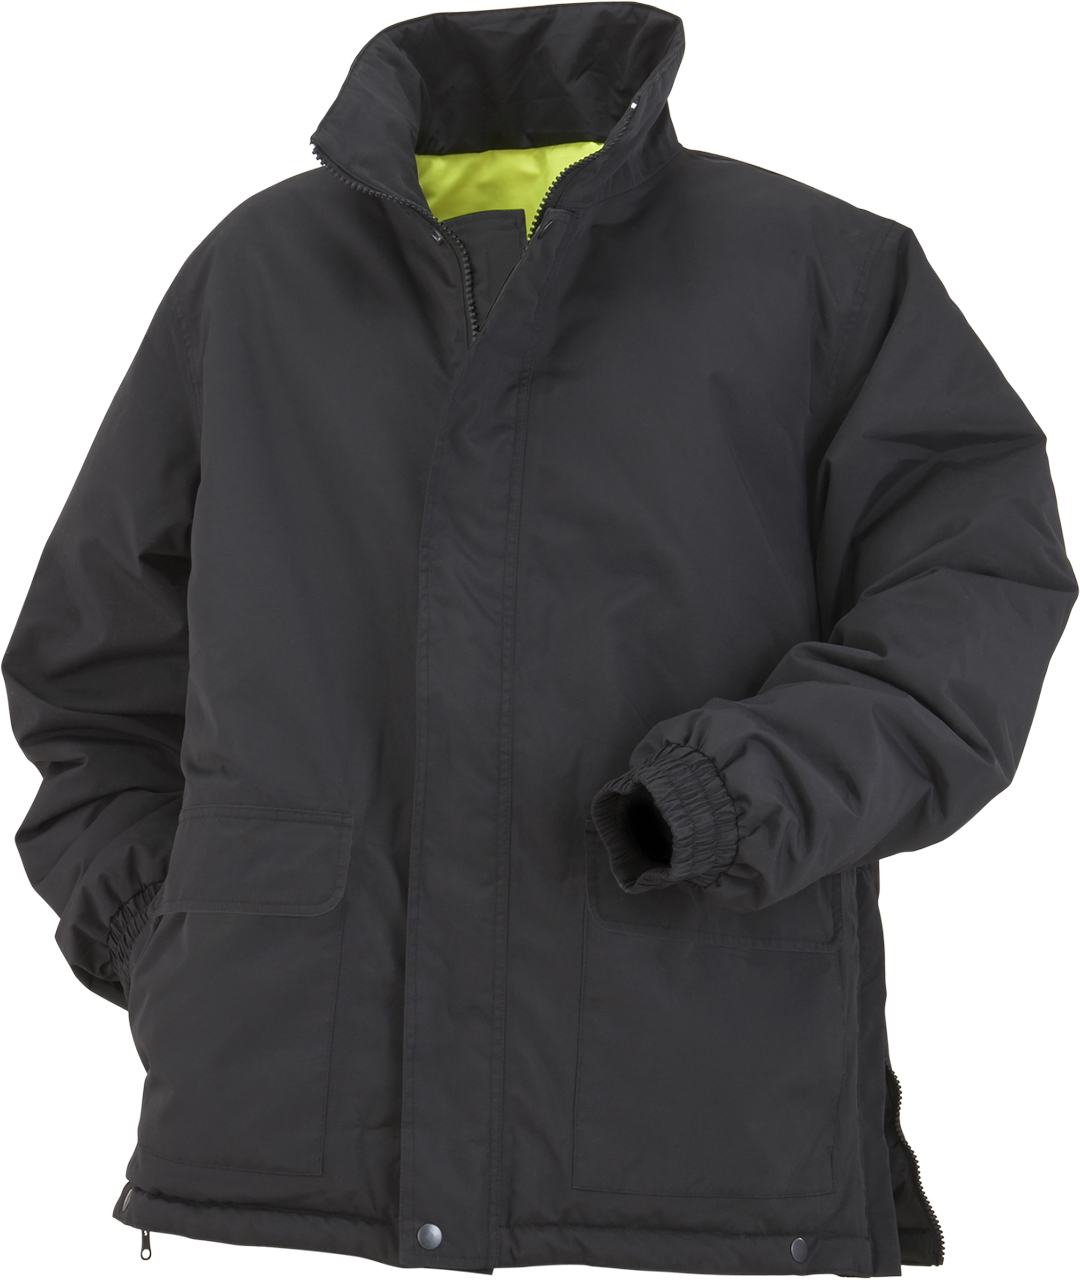 Picture of Sumaggo High Visibility Reversible Winter Jacket